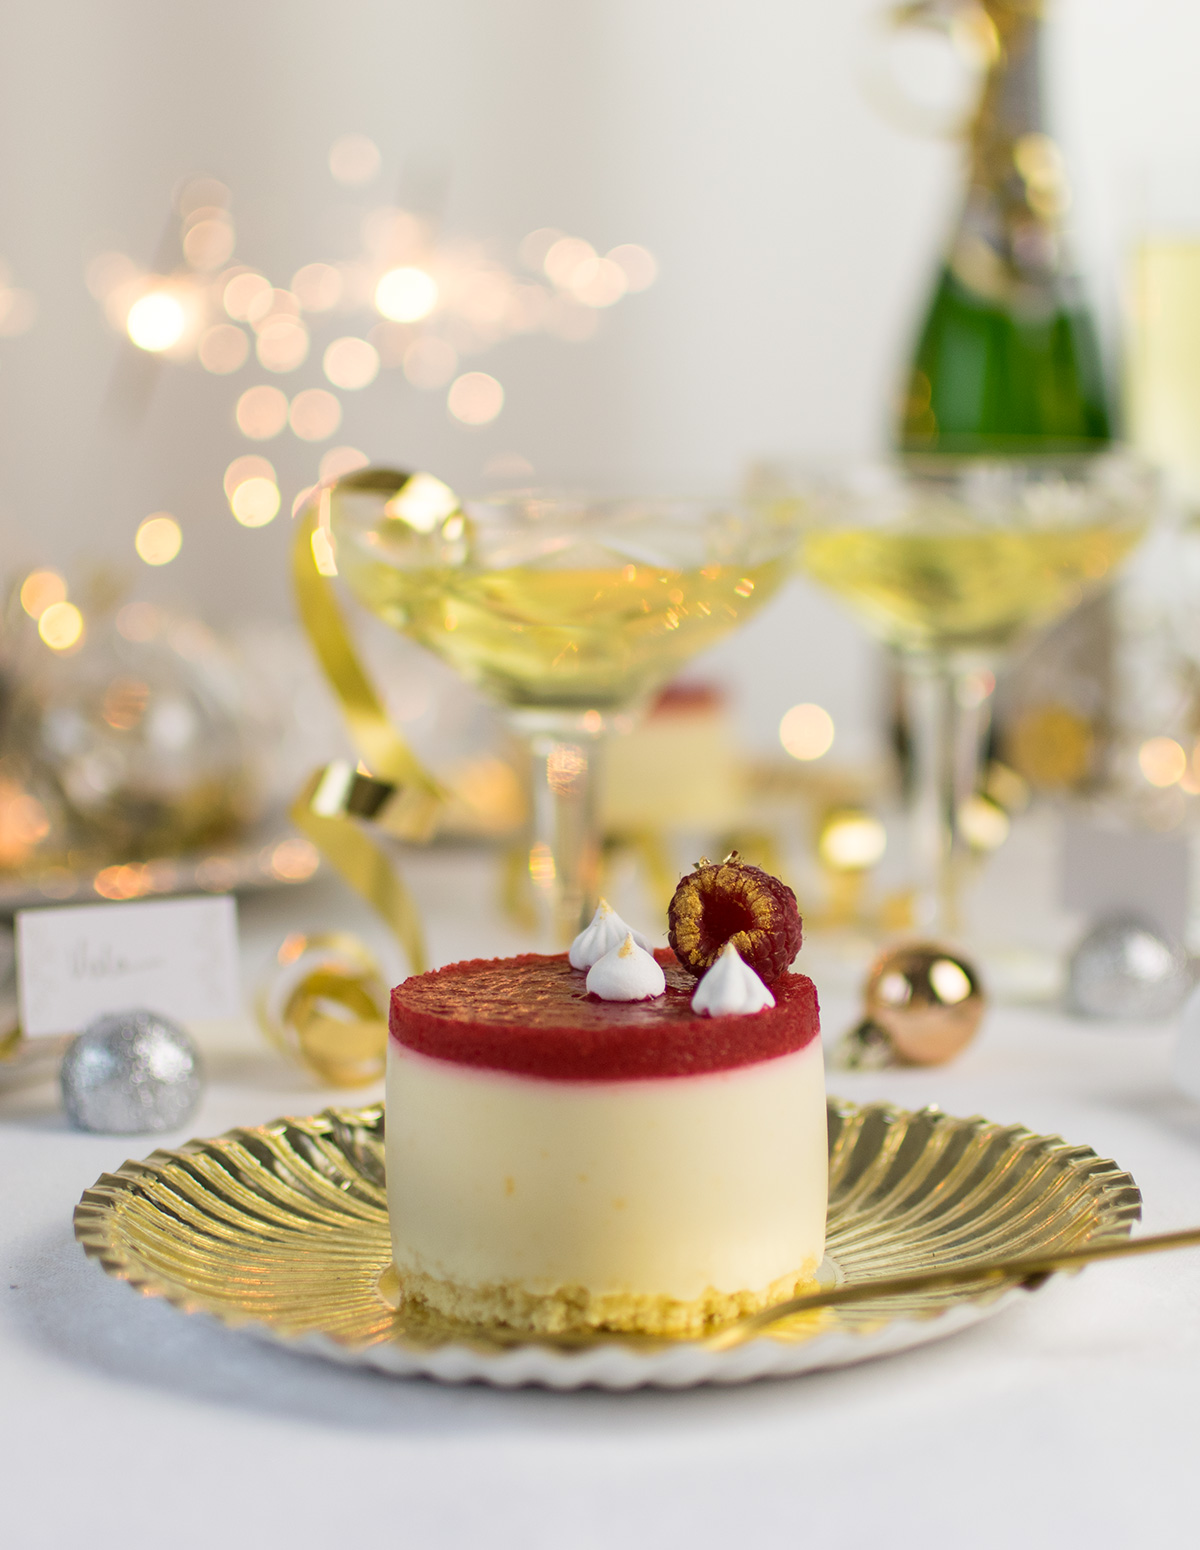 mousse_champagne_gelée_lamponi_ricetta